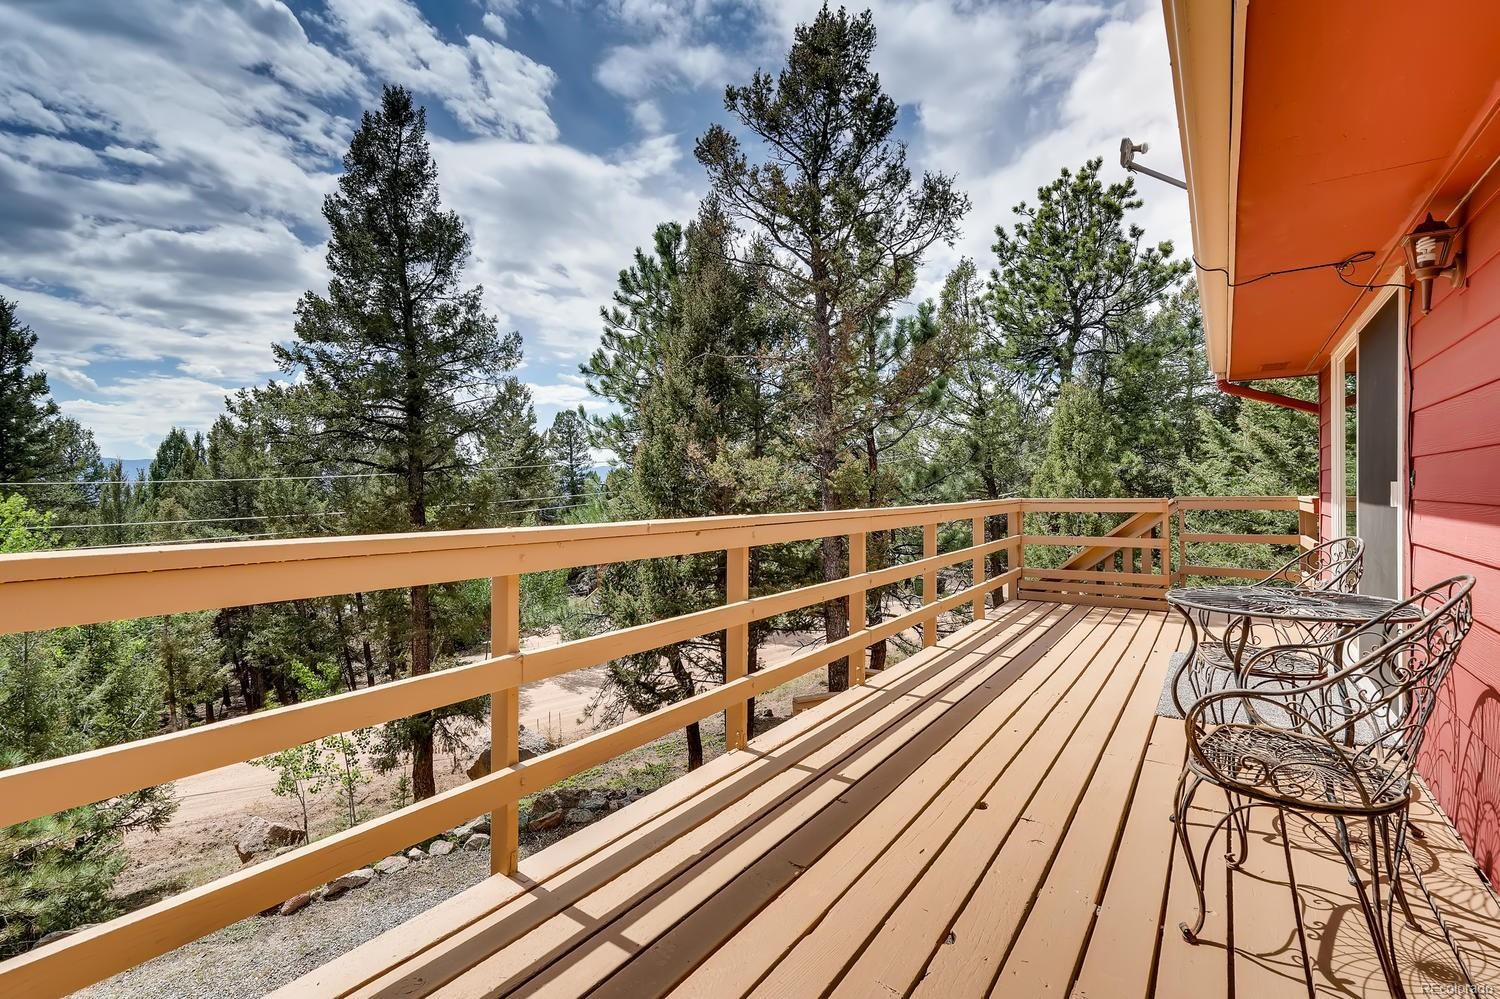 MLS# 8376760 - 21 - 30915 Walter Drive, Conifer, CO 80433